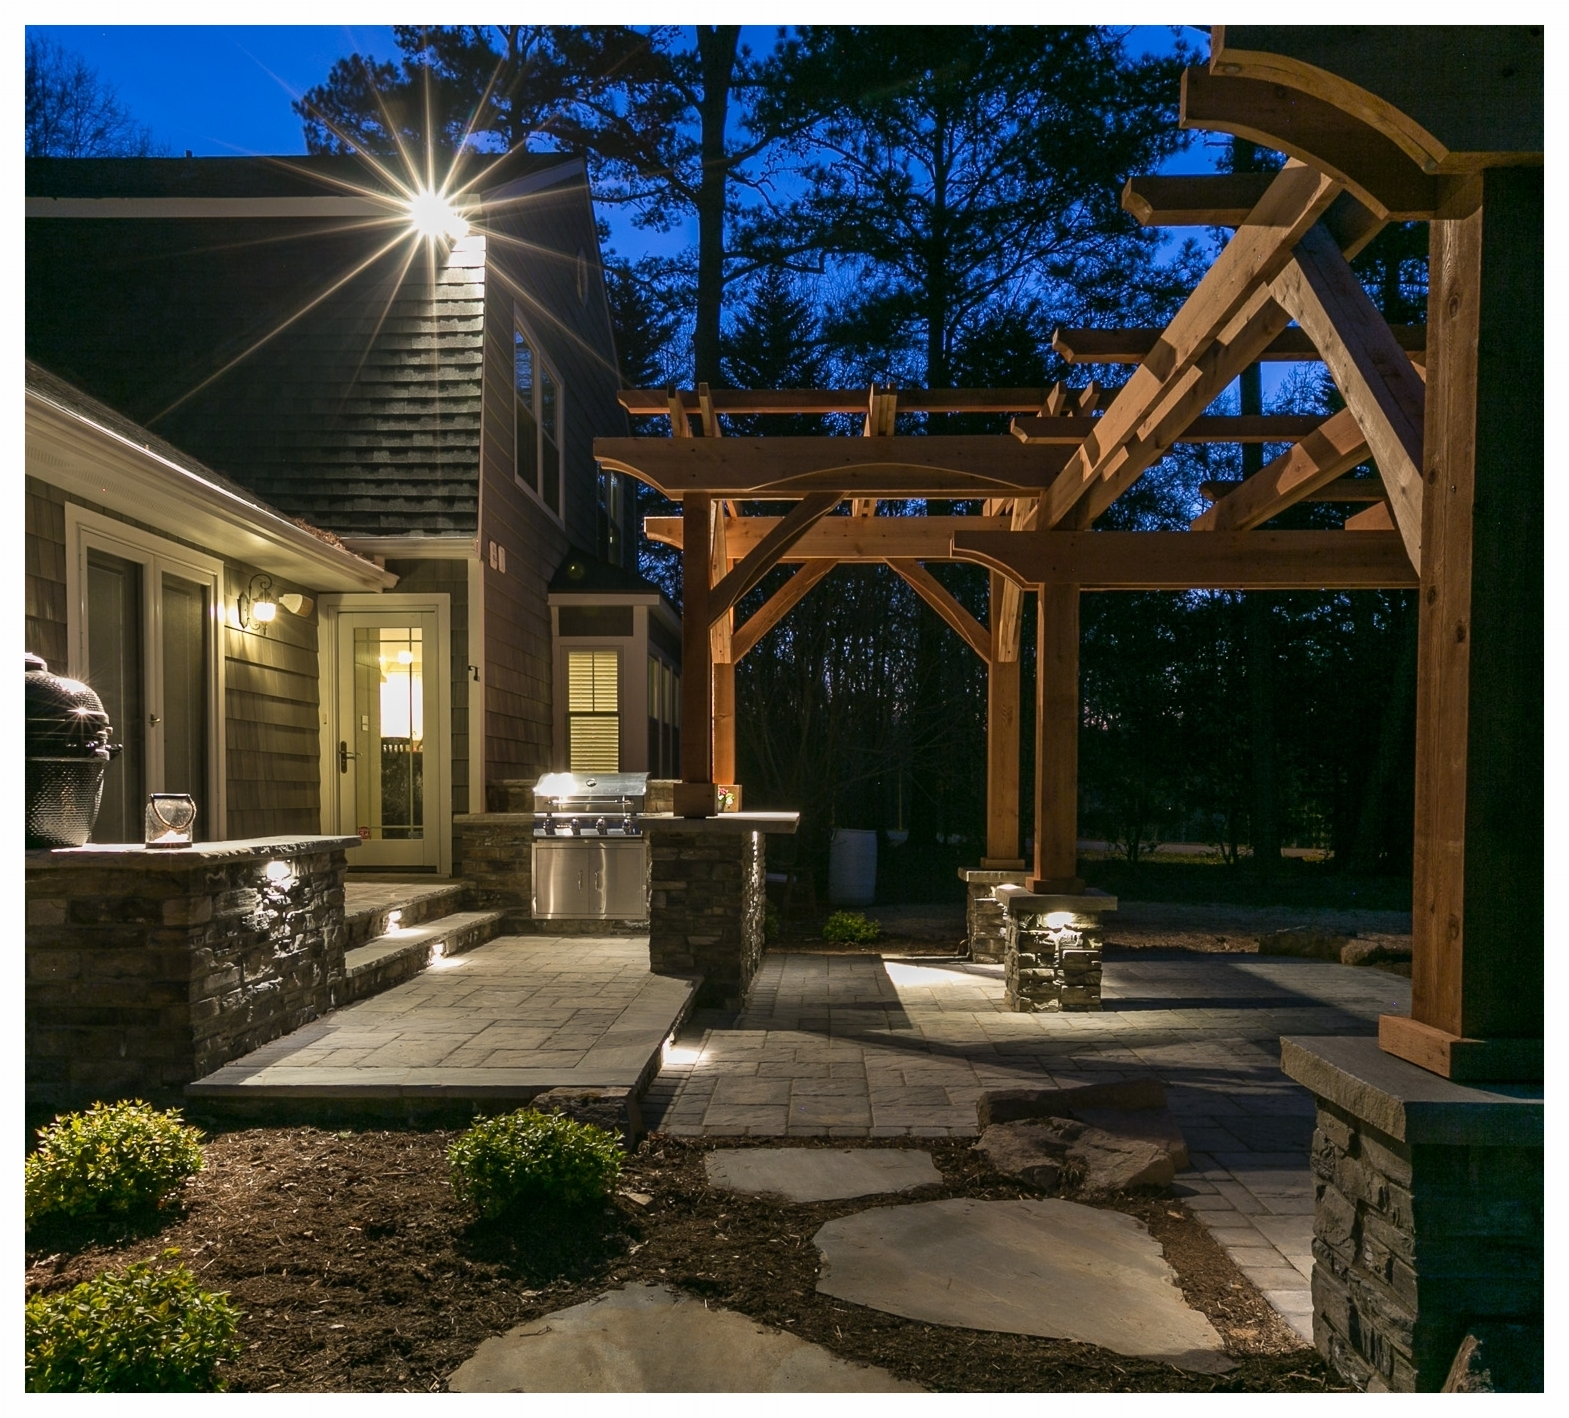 A multi-level outdoor kitchen area with custom pergolas covering the dining bar and seating area. All designed and built by the Outdoor Artisan team.